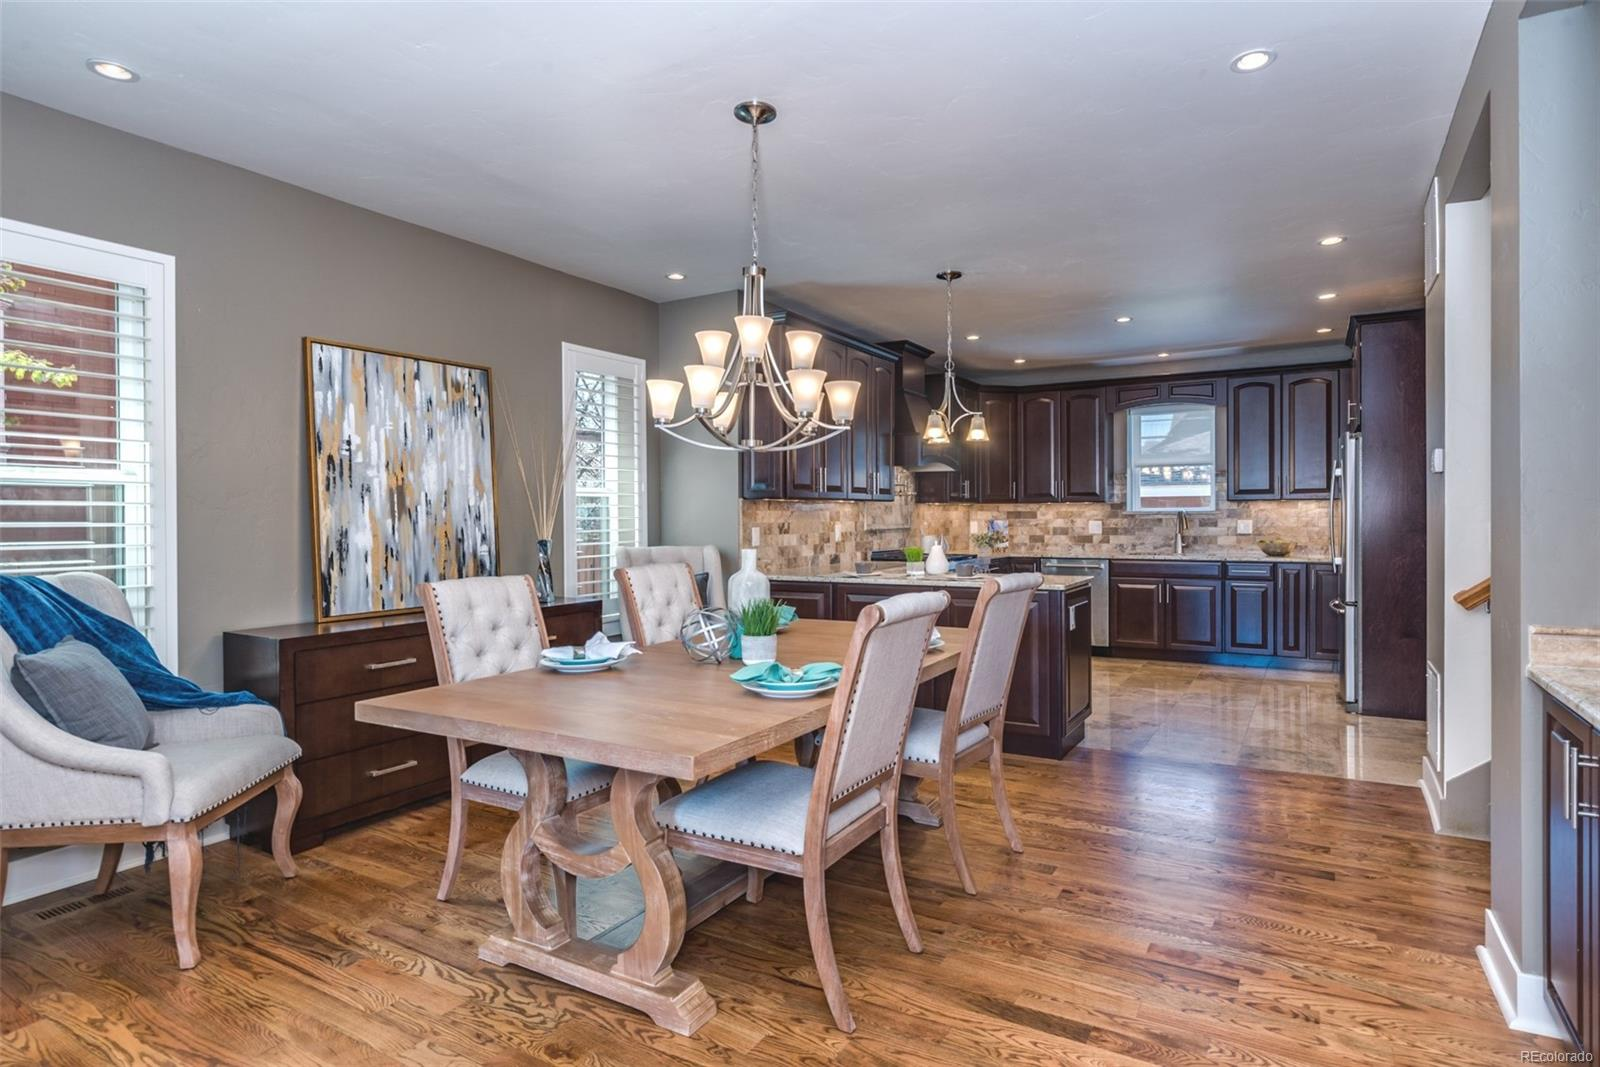 RECESSED LIGHTING IN THE LIVING ROOM, DINING ROOM & THE KITCHEN!